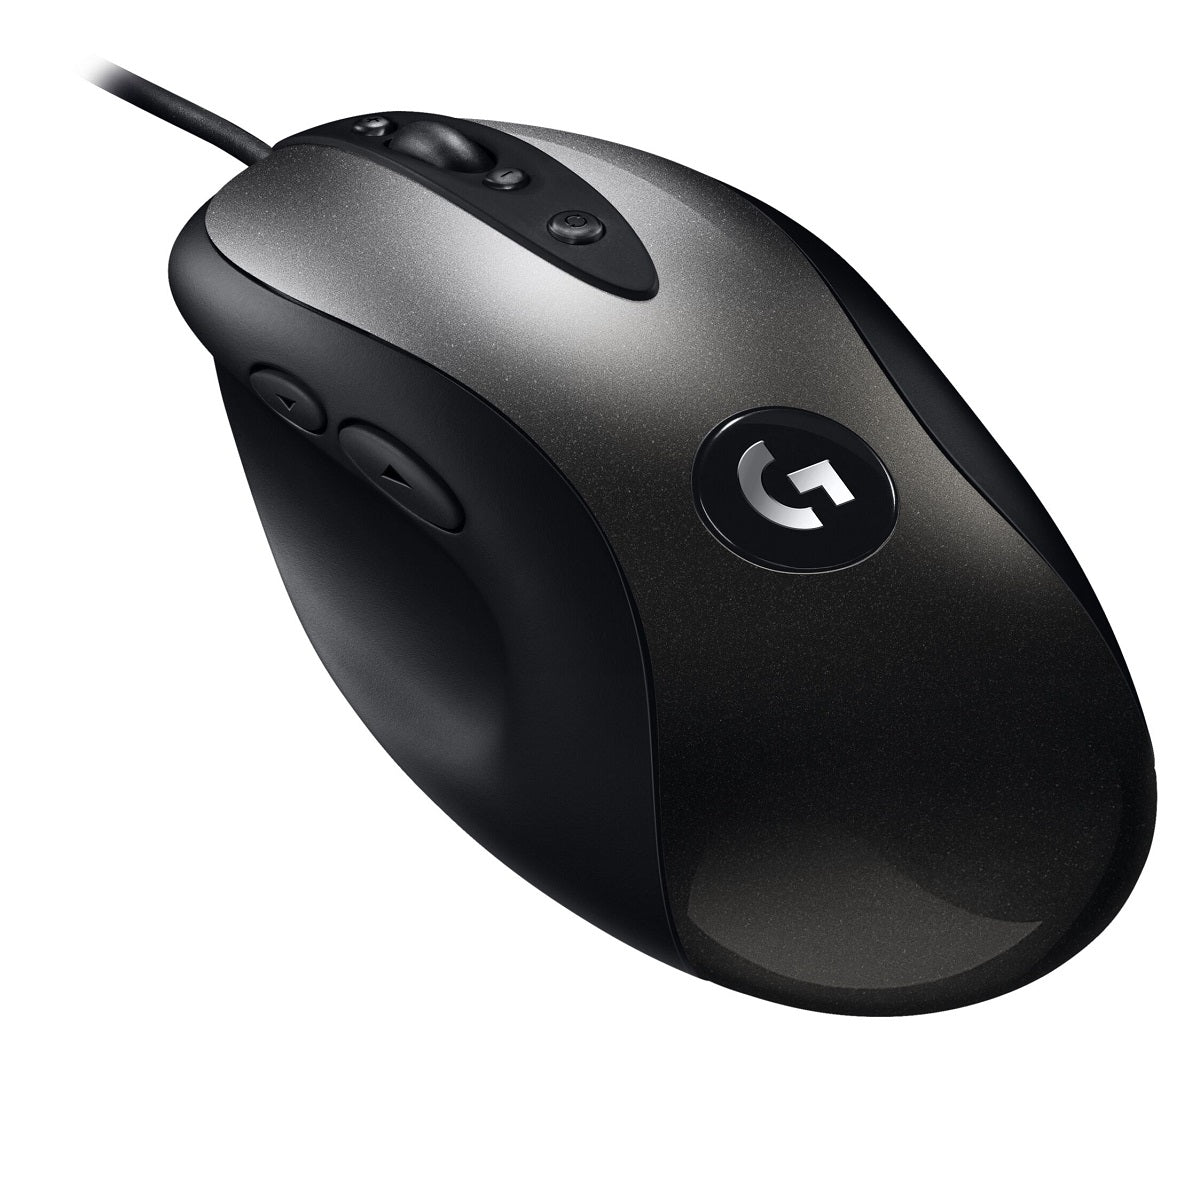 Mouse Gamer Logitech G MX518 Legendary